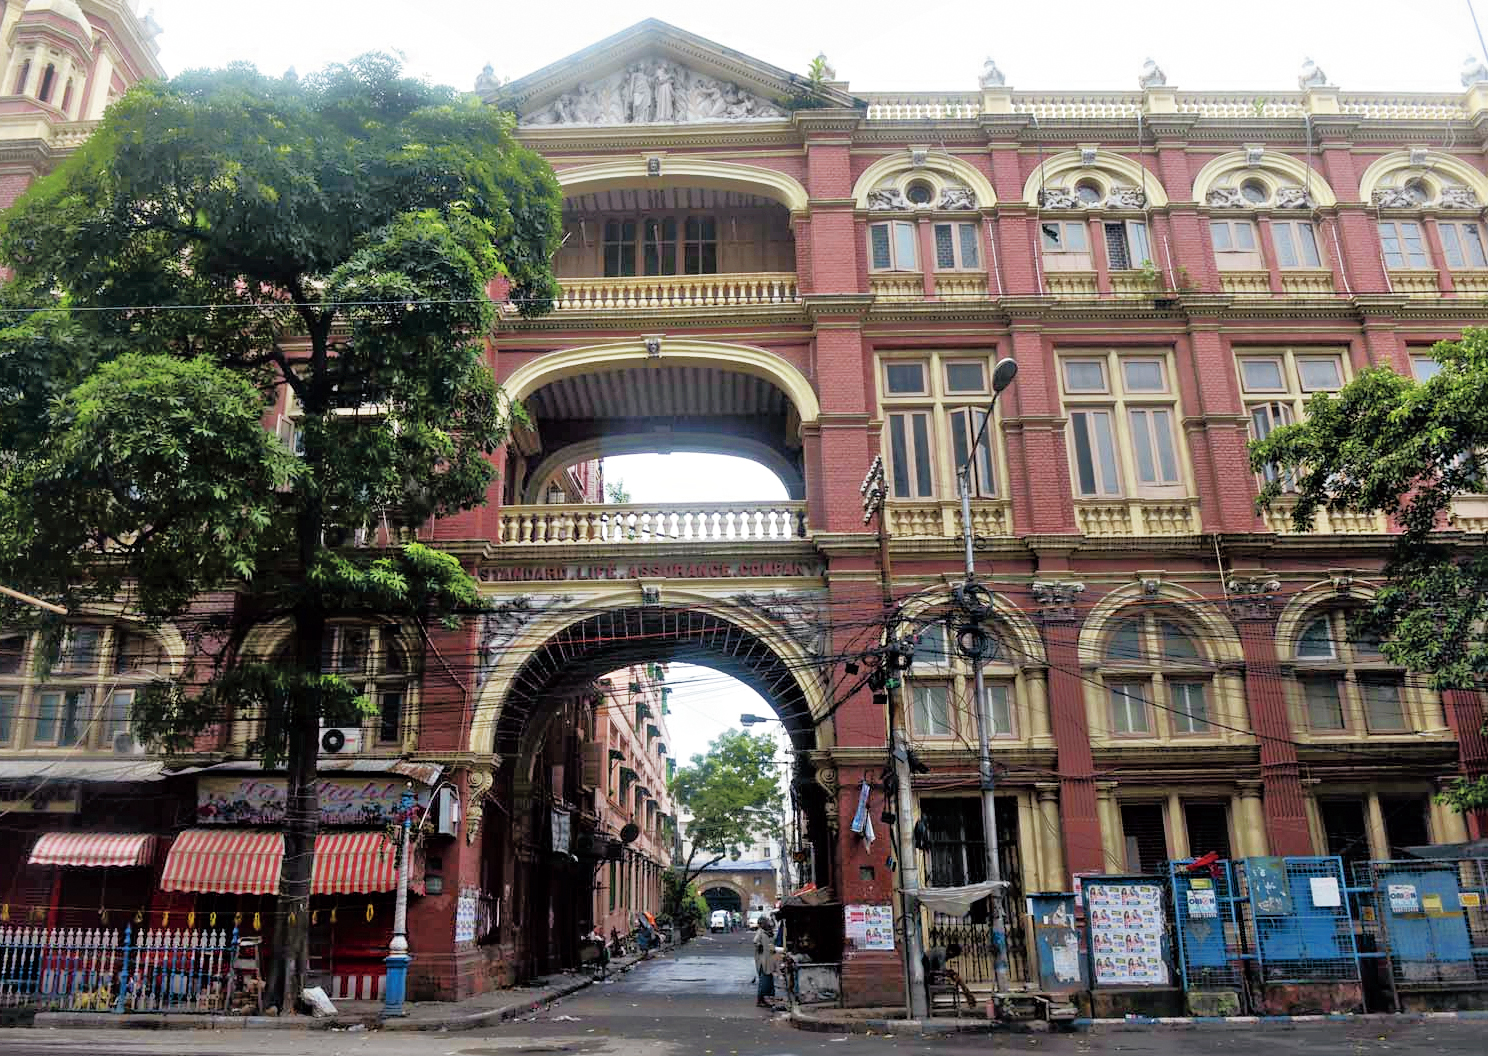 The Standard Life Assurance building on Hemanta Basu Sarani. The small passage through the gateway leads to one end of the Rodda godown.